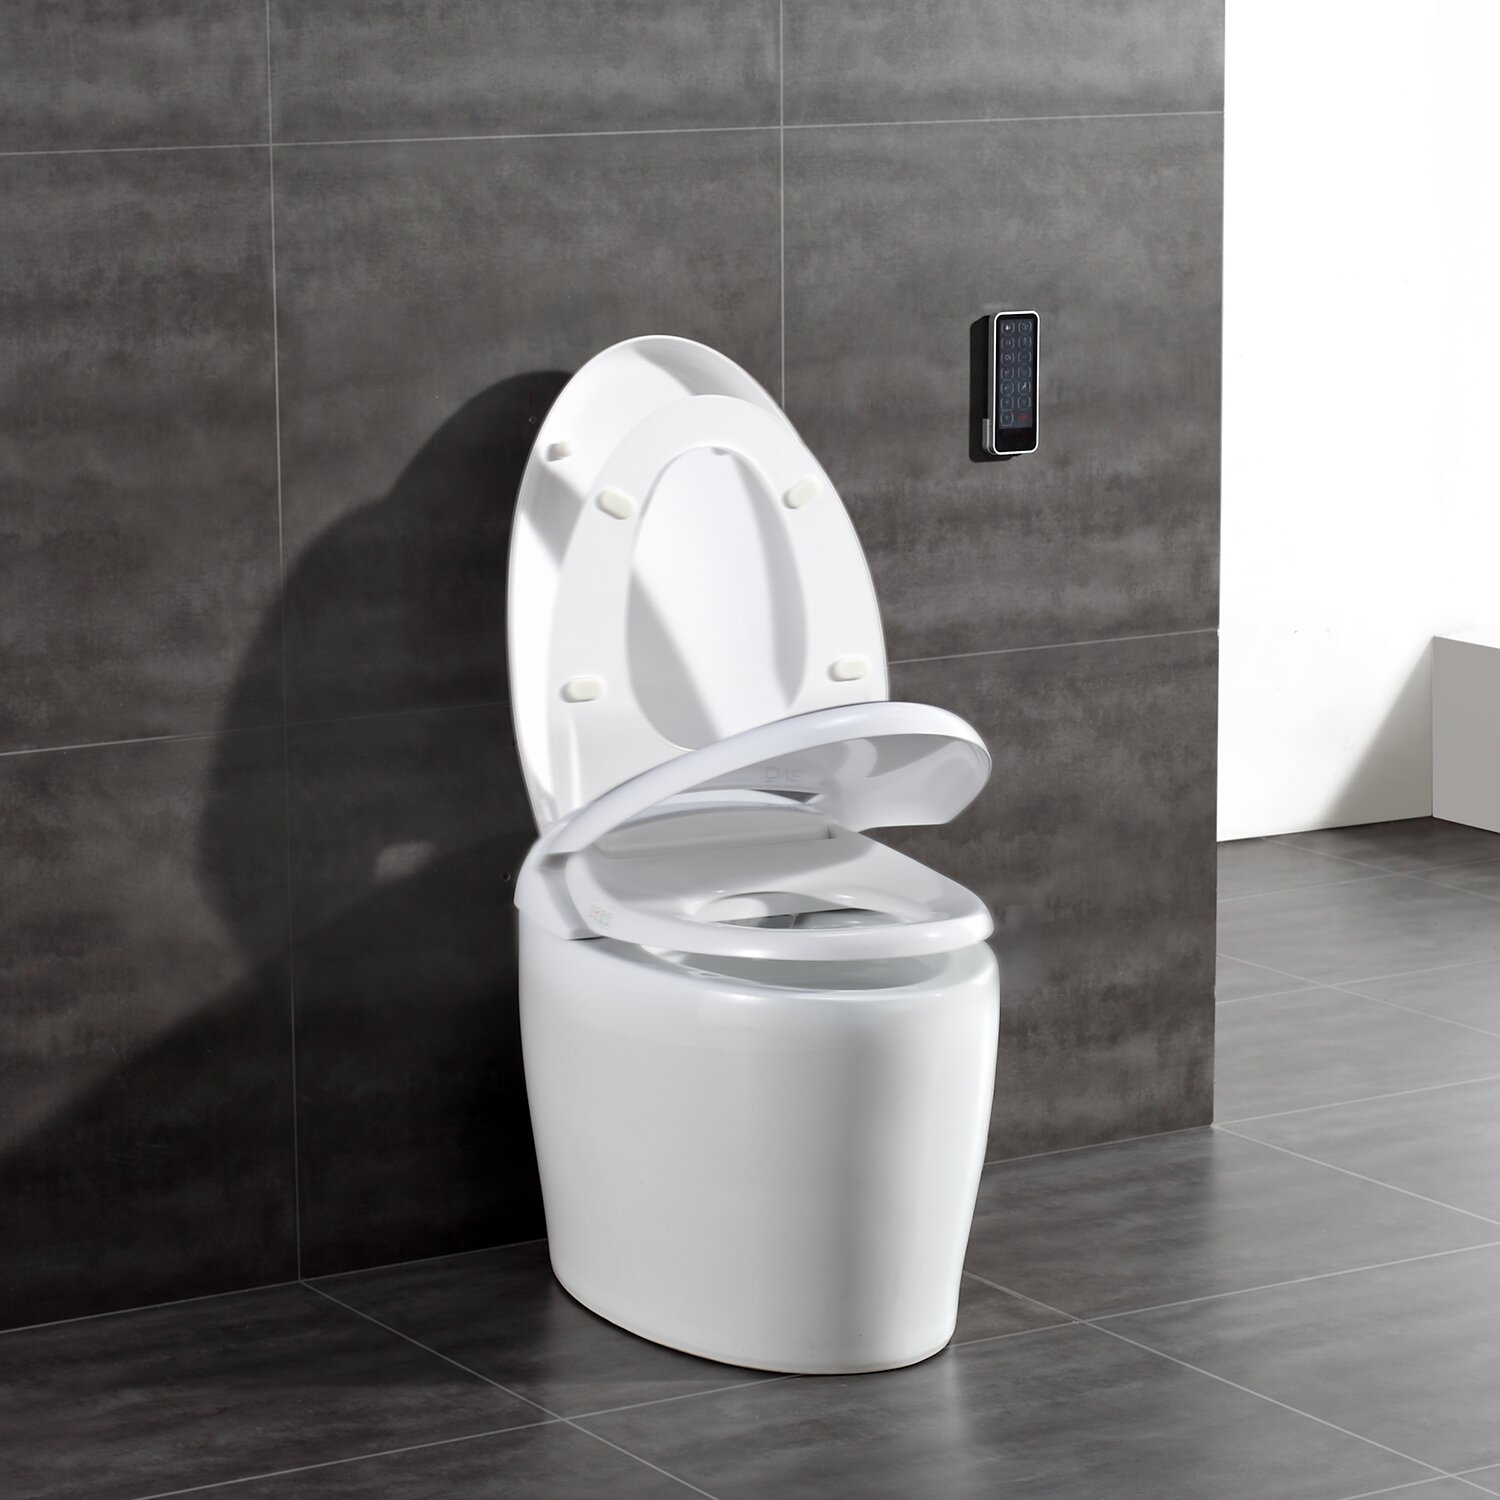 Ove Decors Tuva Smart Toilet 20 Quot Floor Mount Bidet